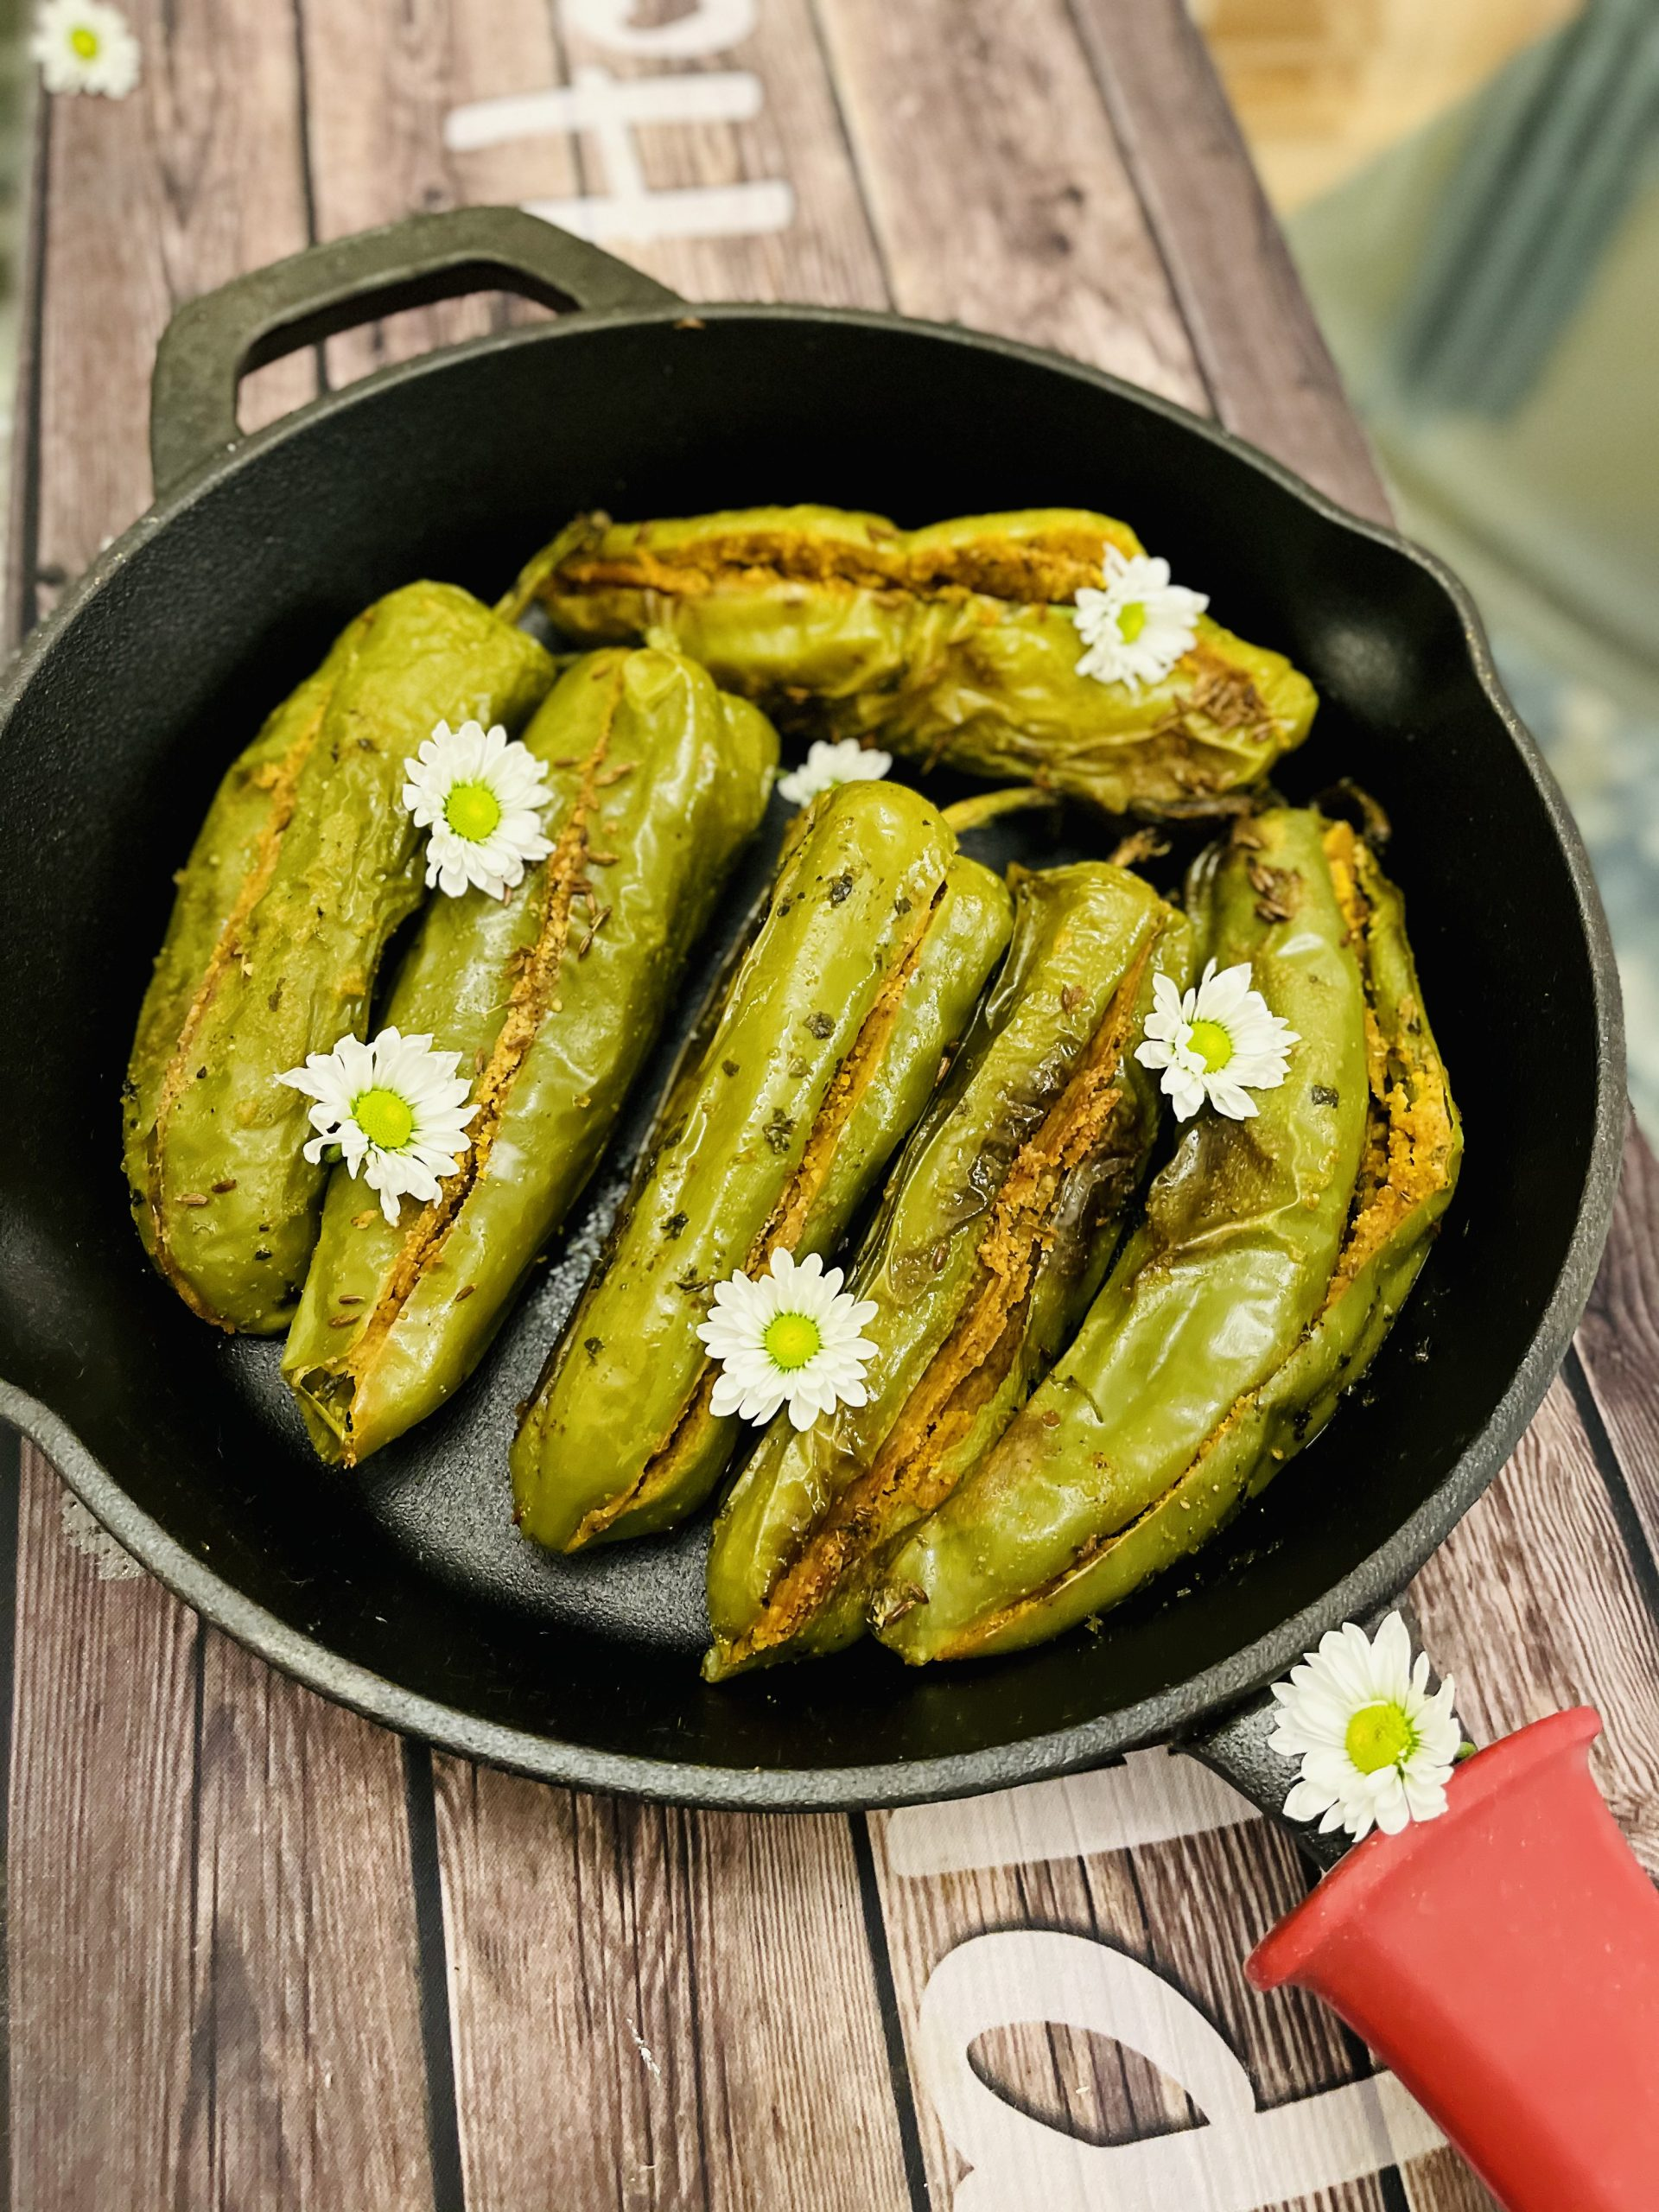 BESAN KI MIRCHI - STUFFED PEPPERS